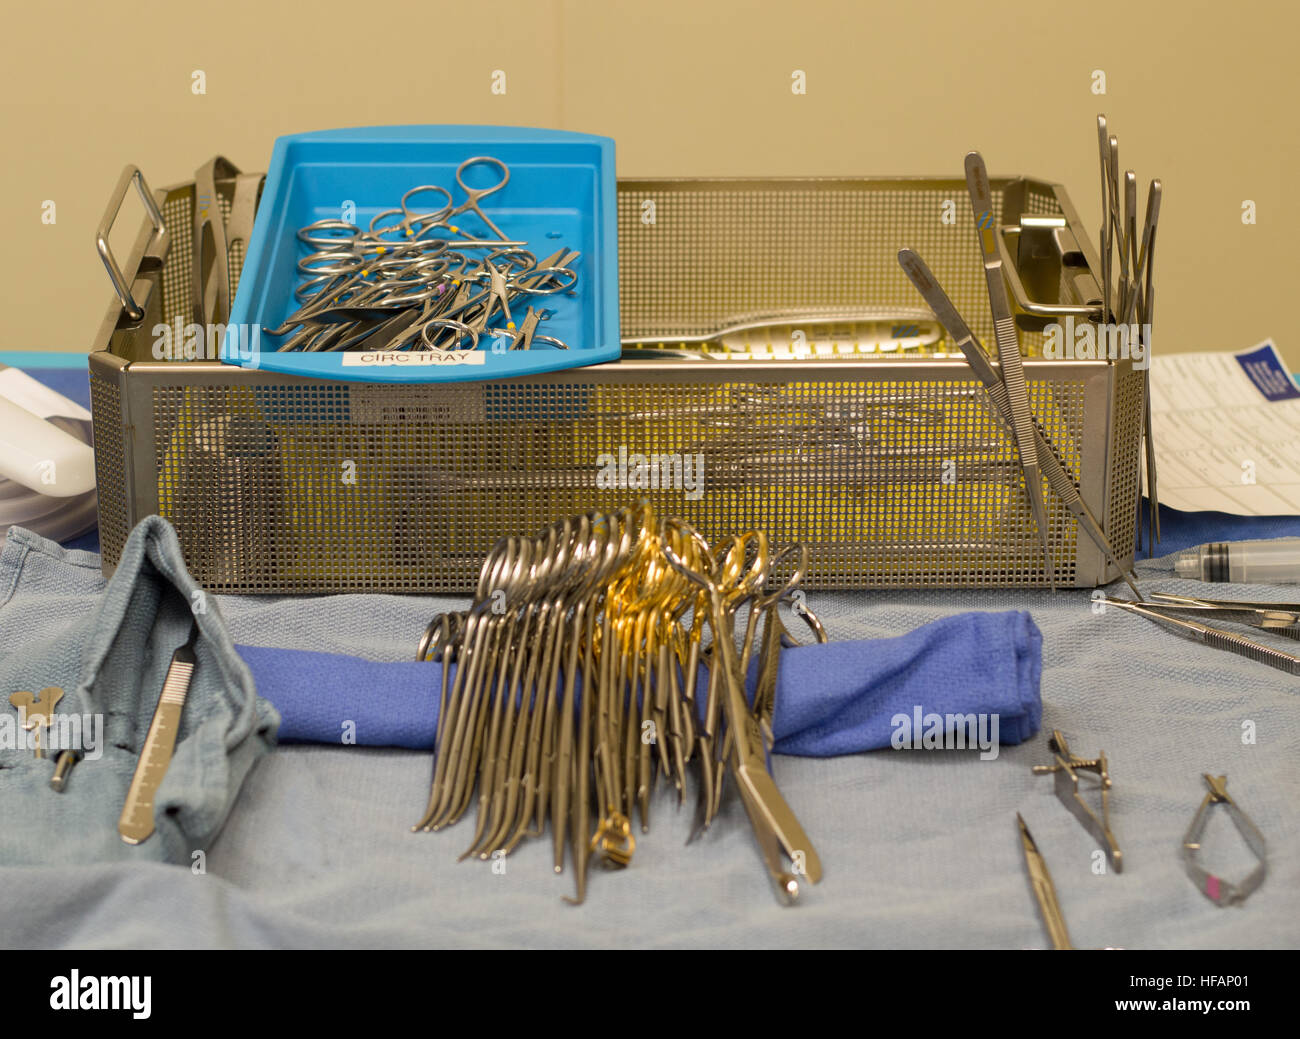 Sterile surgical instruments with a metal pan in background and sterile drapes on operating room table in foreground. - Stock Image